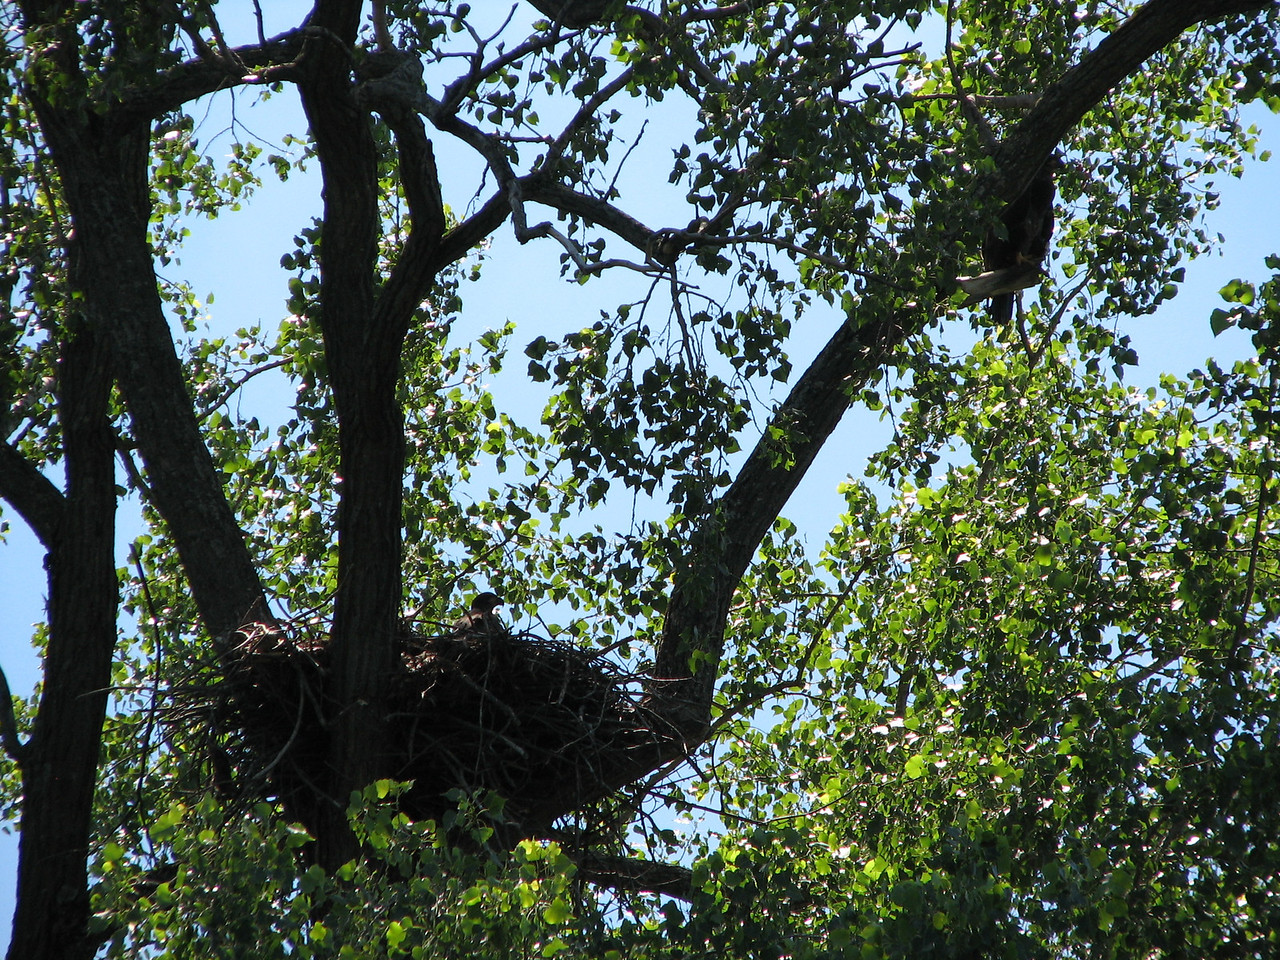 An eagle nest with chicks.  Notice parent eagle perched above and right, keeping an eye on things.